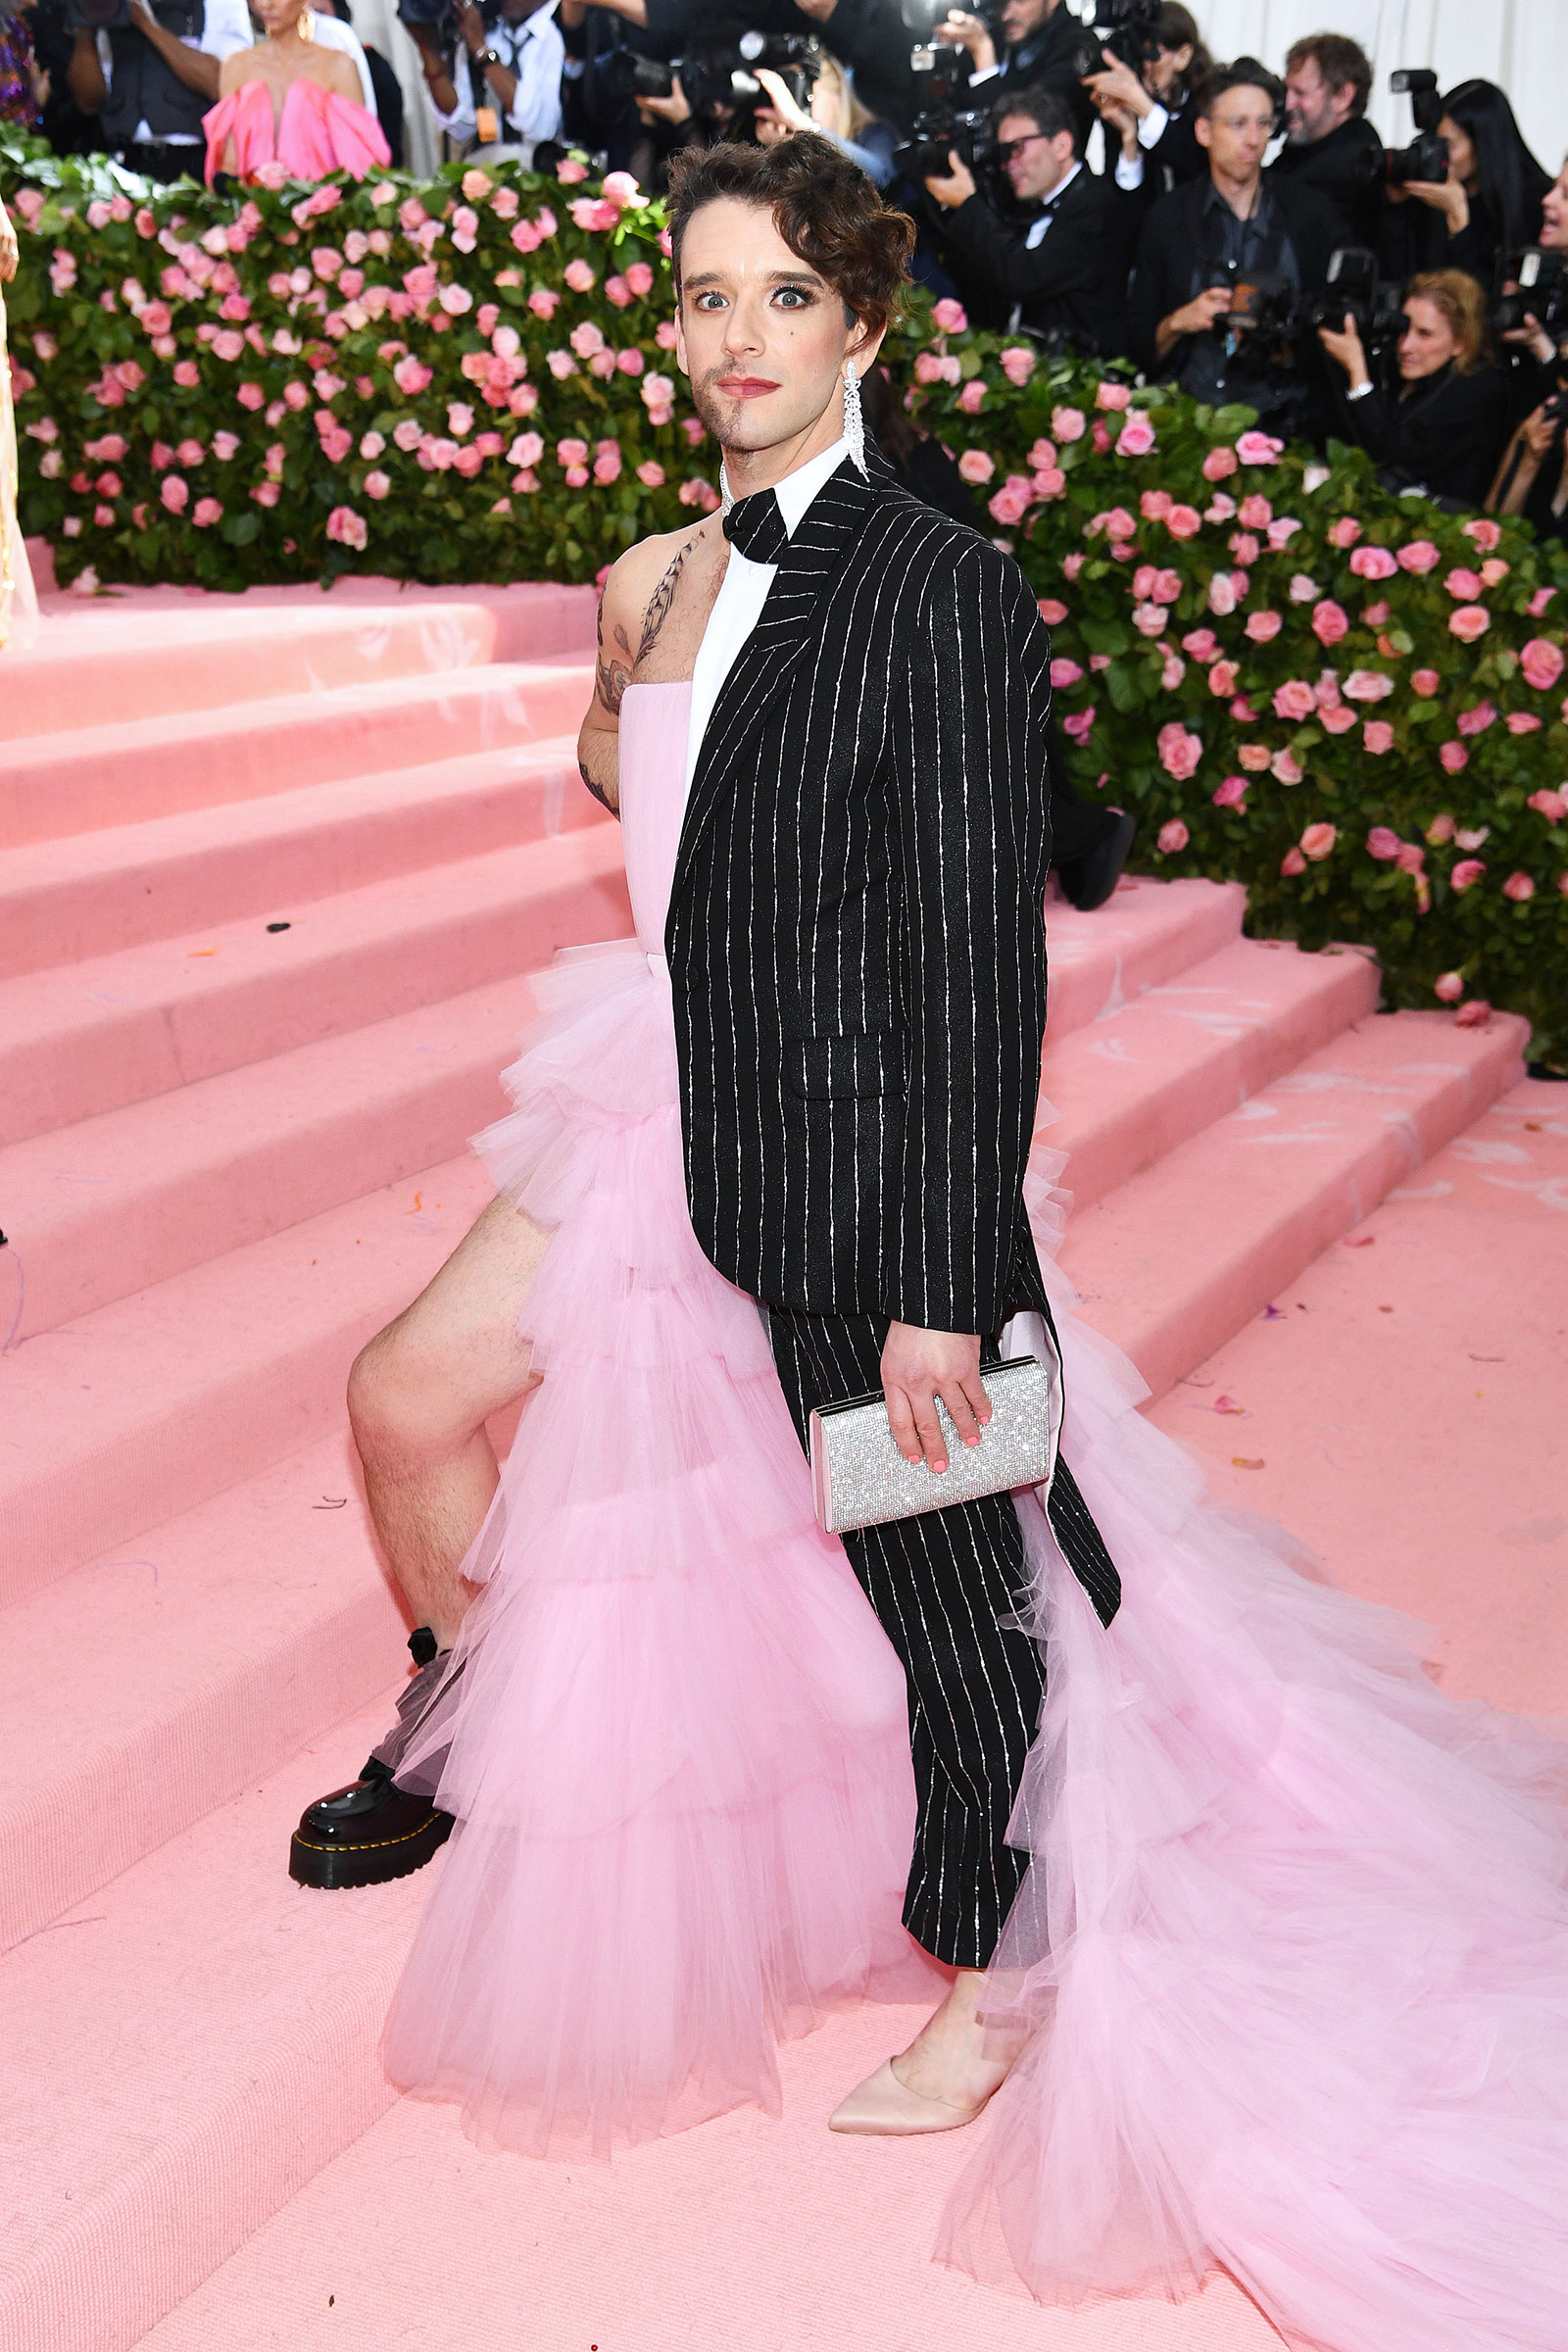 see the best dressed and craziest looks from 2019 met gala